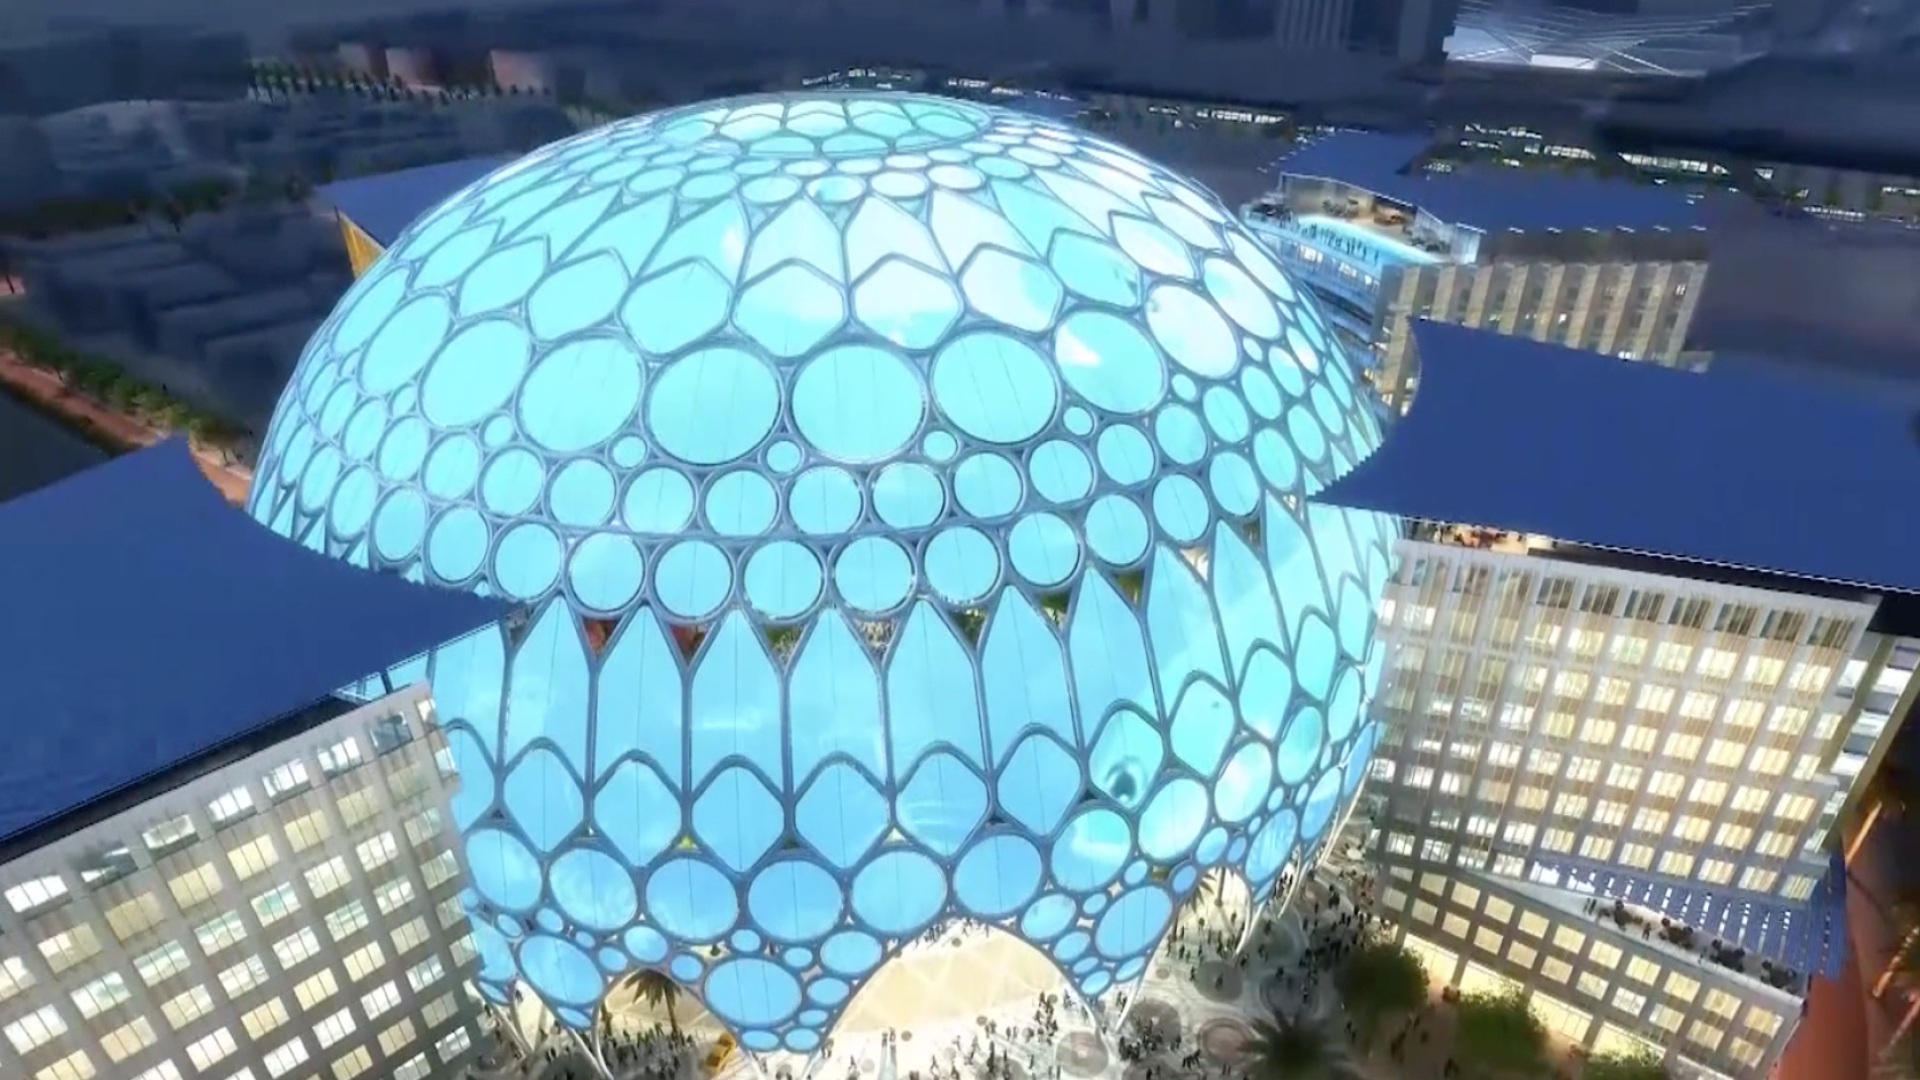 Al Wasl dome for Dubai Expo 2020 is an architectural marvel